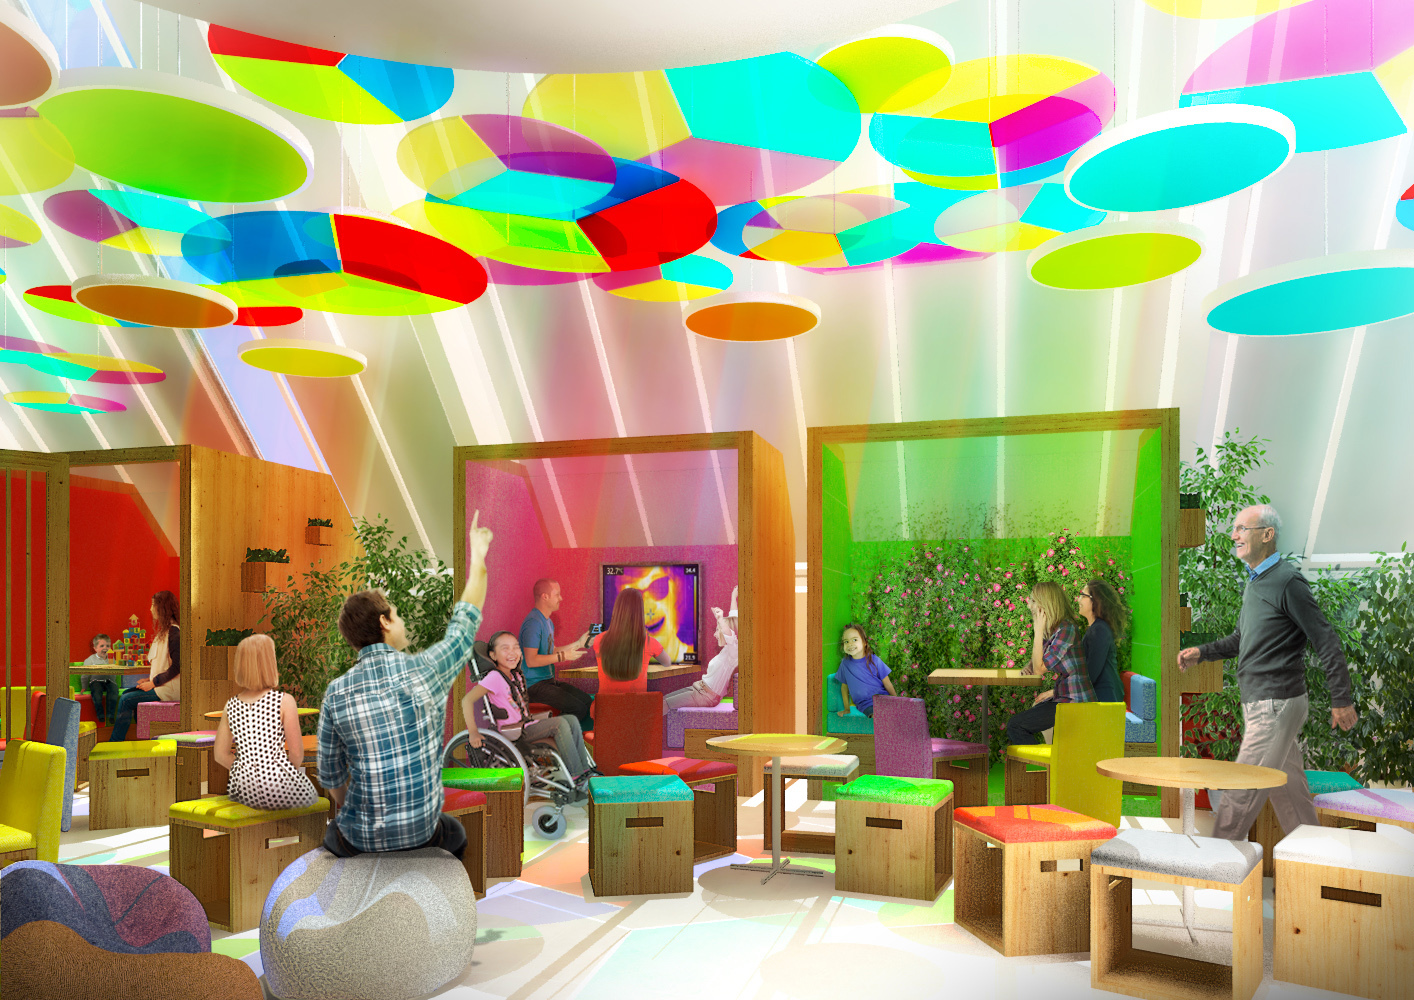 One of the new booths proposed for Dundee Science Centre.